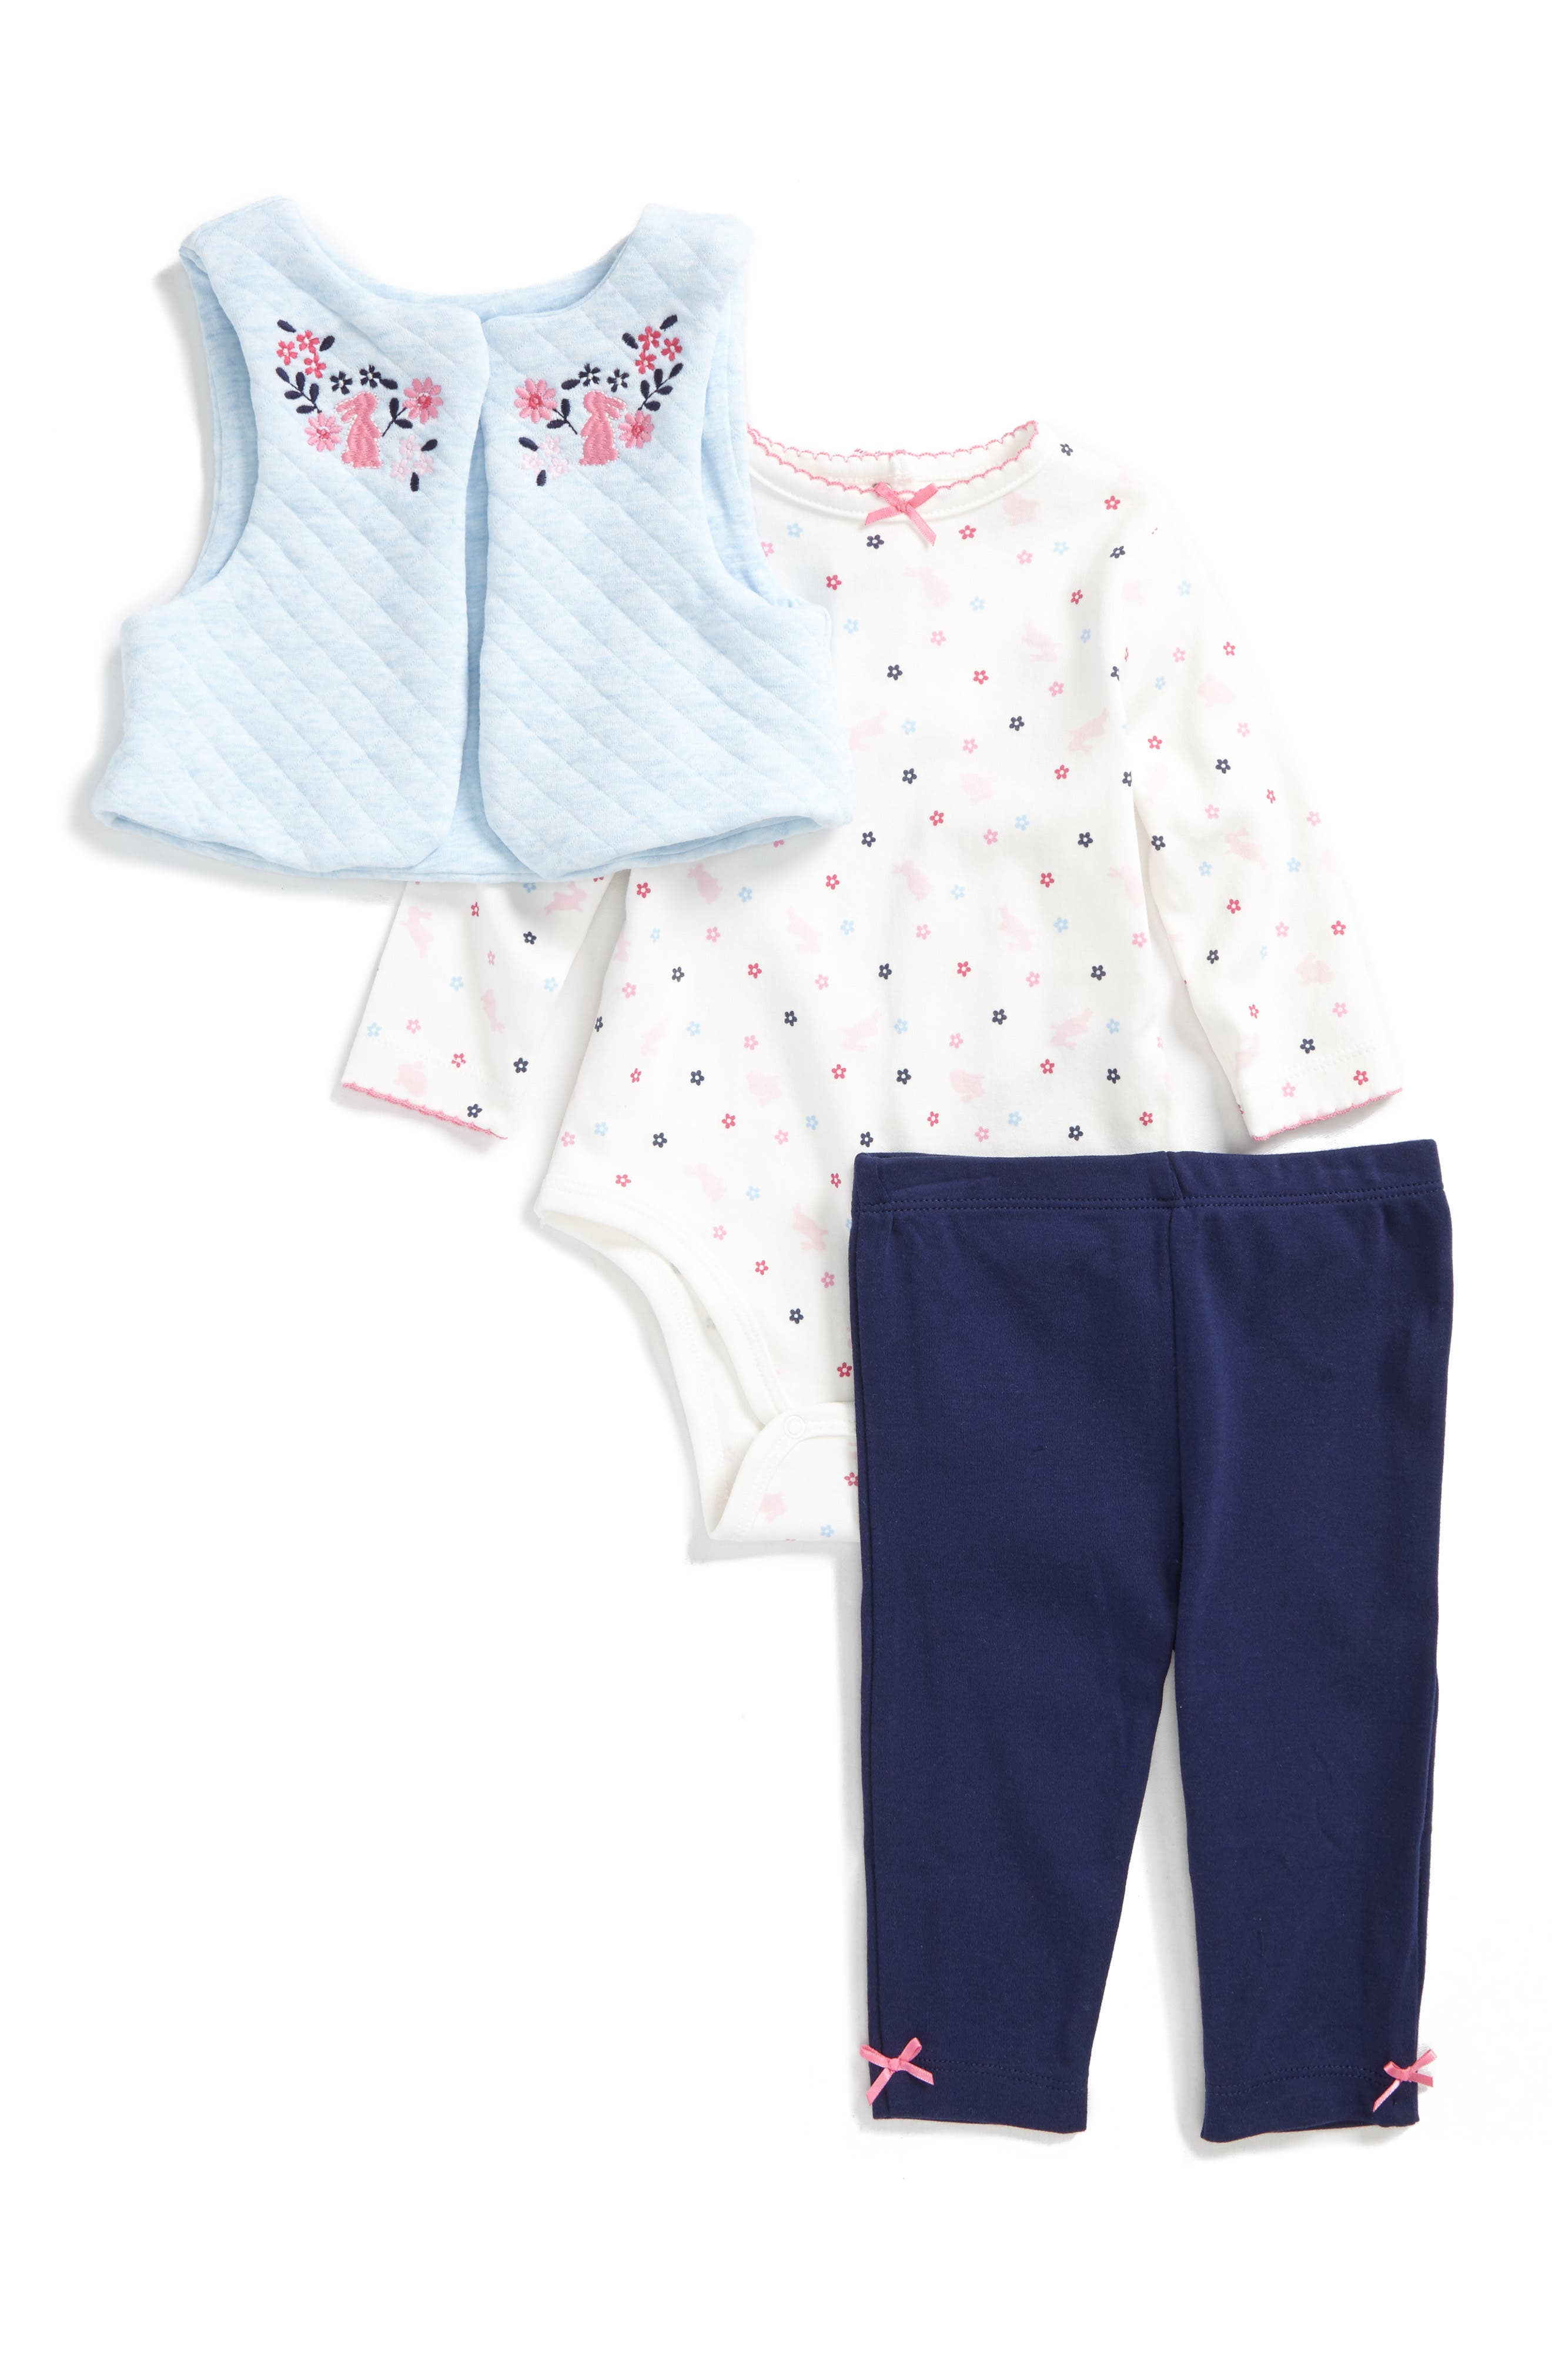 Alternate Image 1 Selected - Little Me Bunny Vest, Bodysuit & Pants Set (Baby Girls)